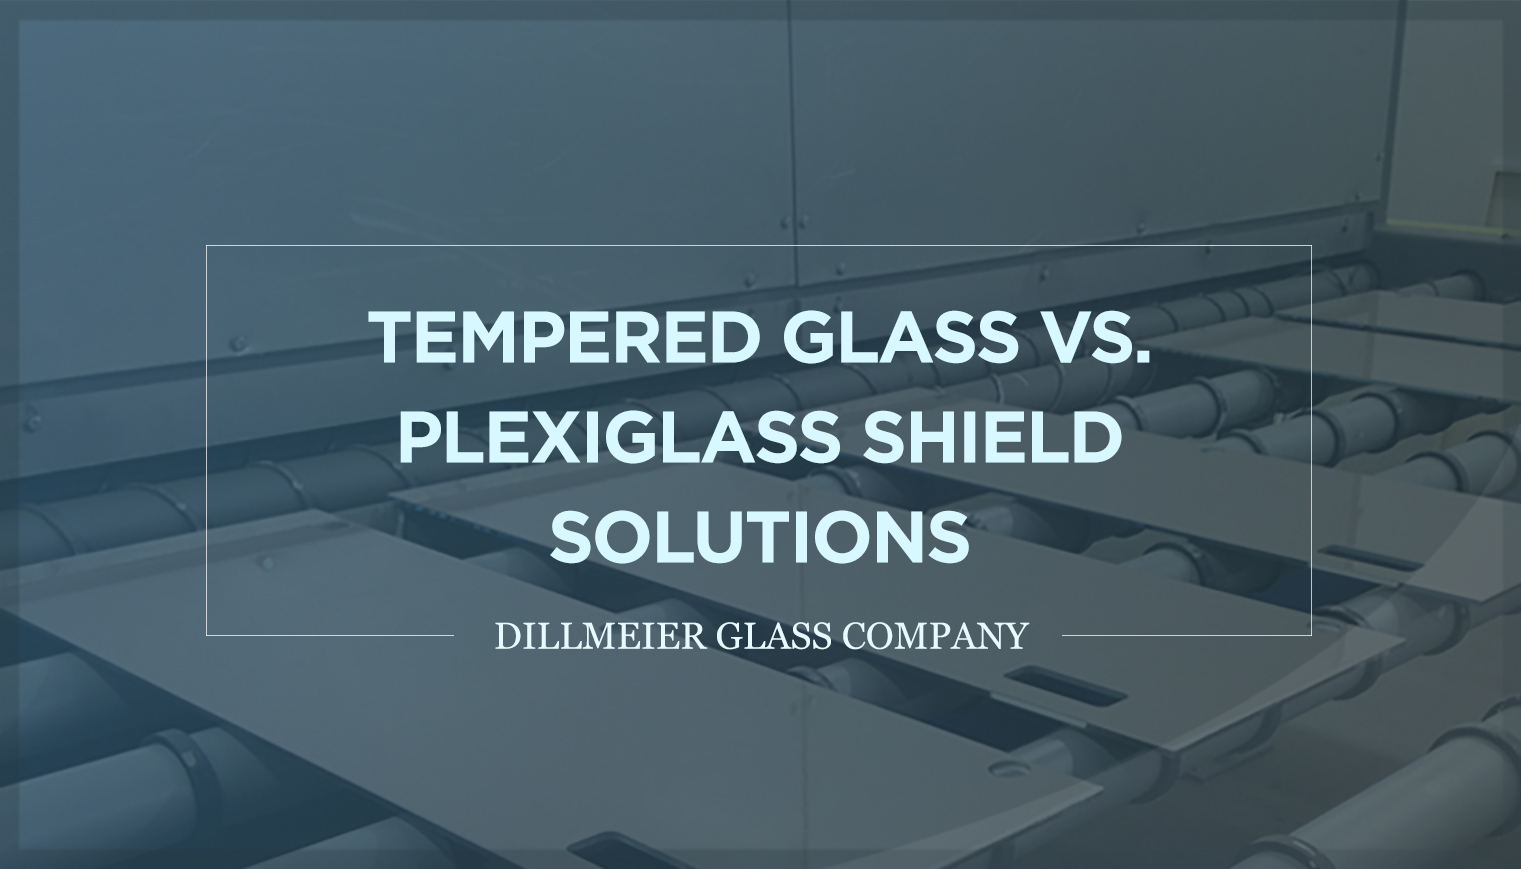 Tempered Glass vs. Plexiglass Shield Solutions